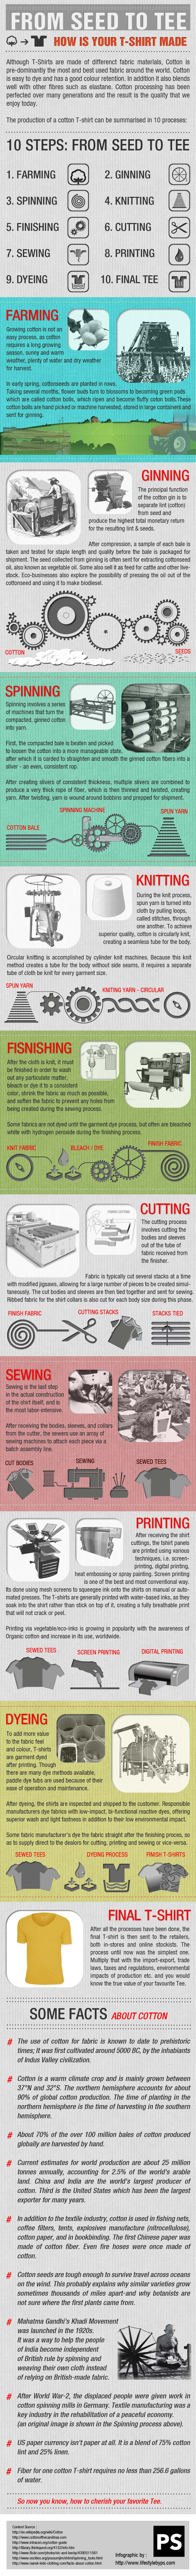 How t-shirts are made - infographic